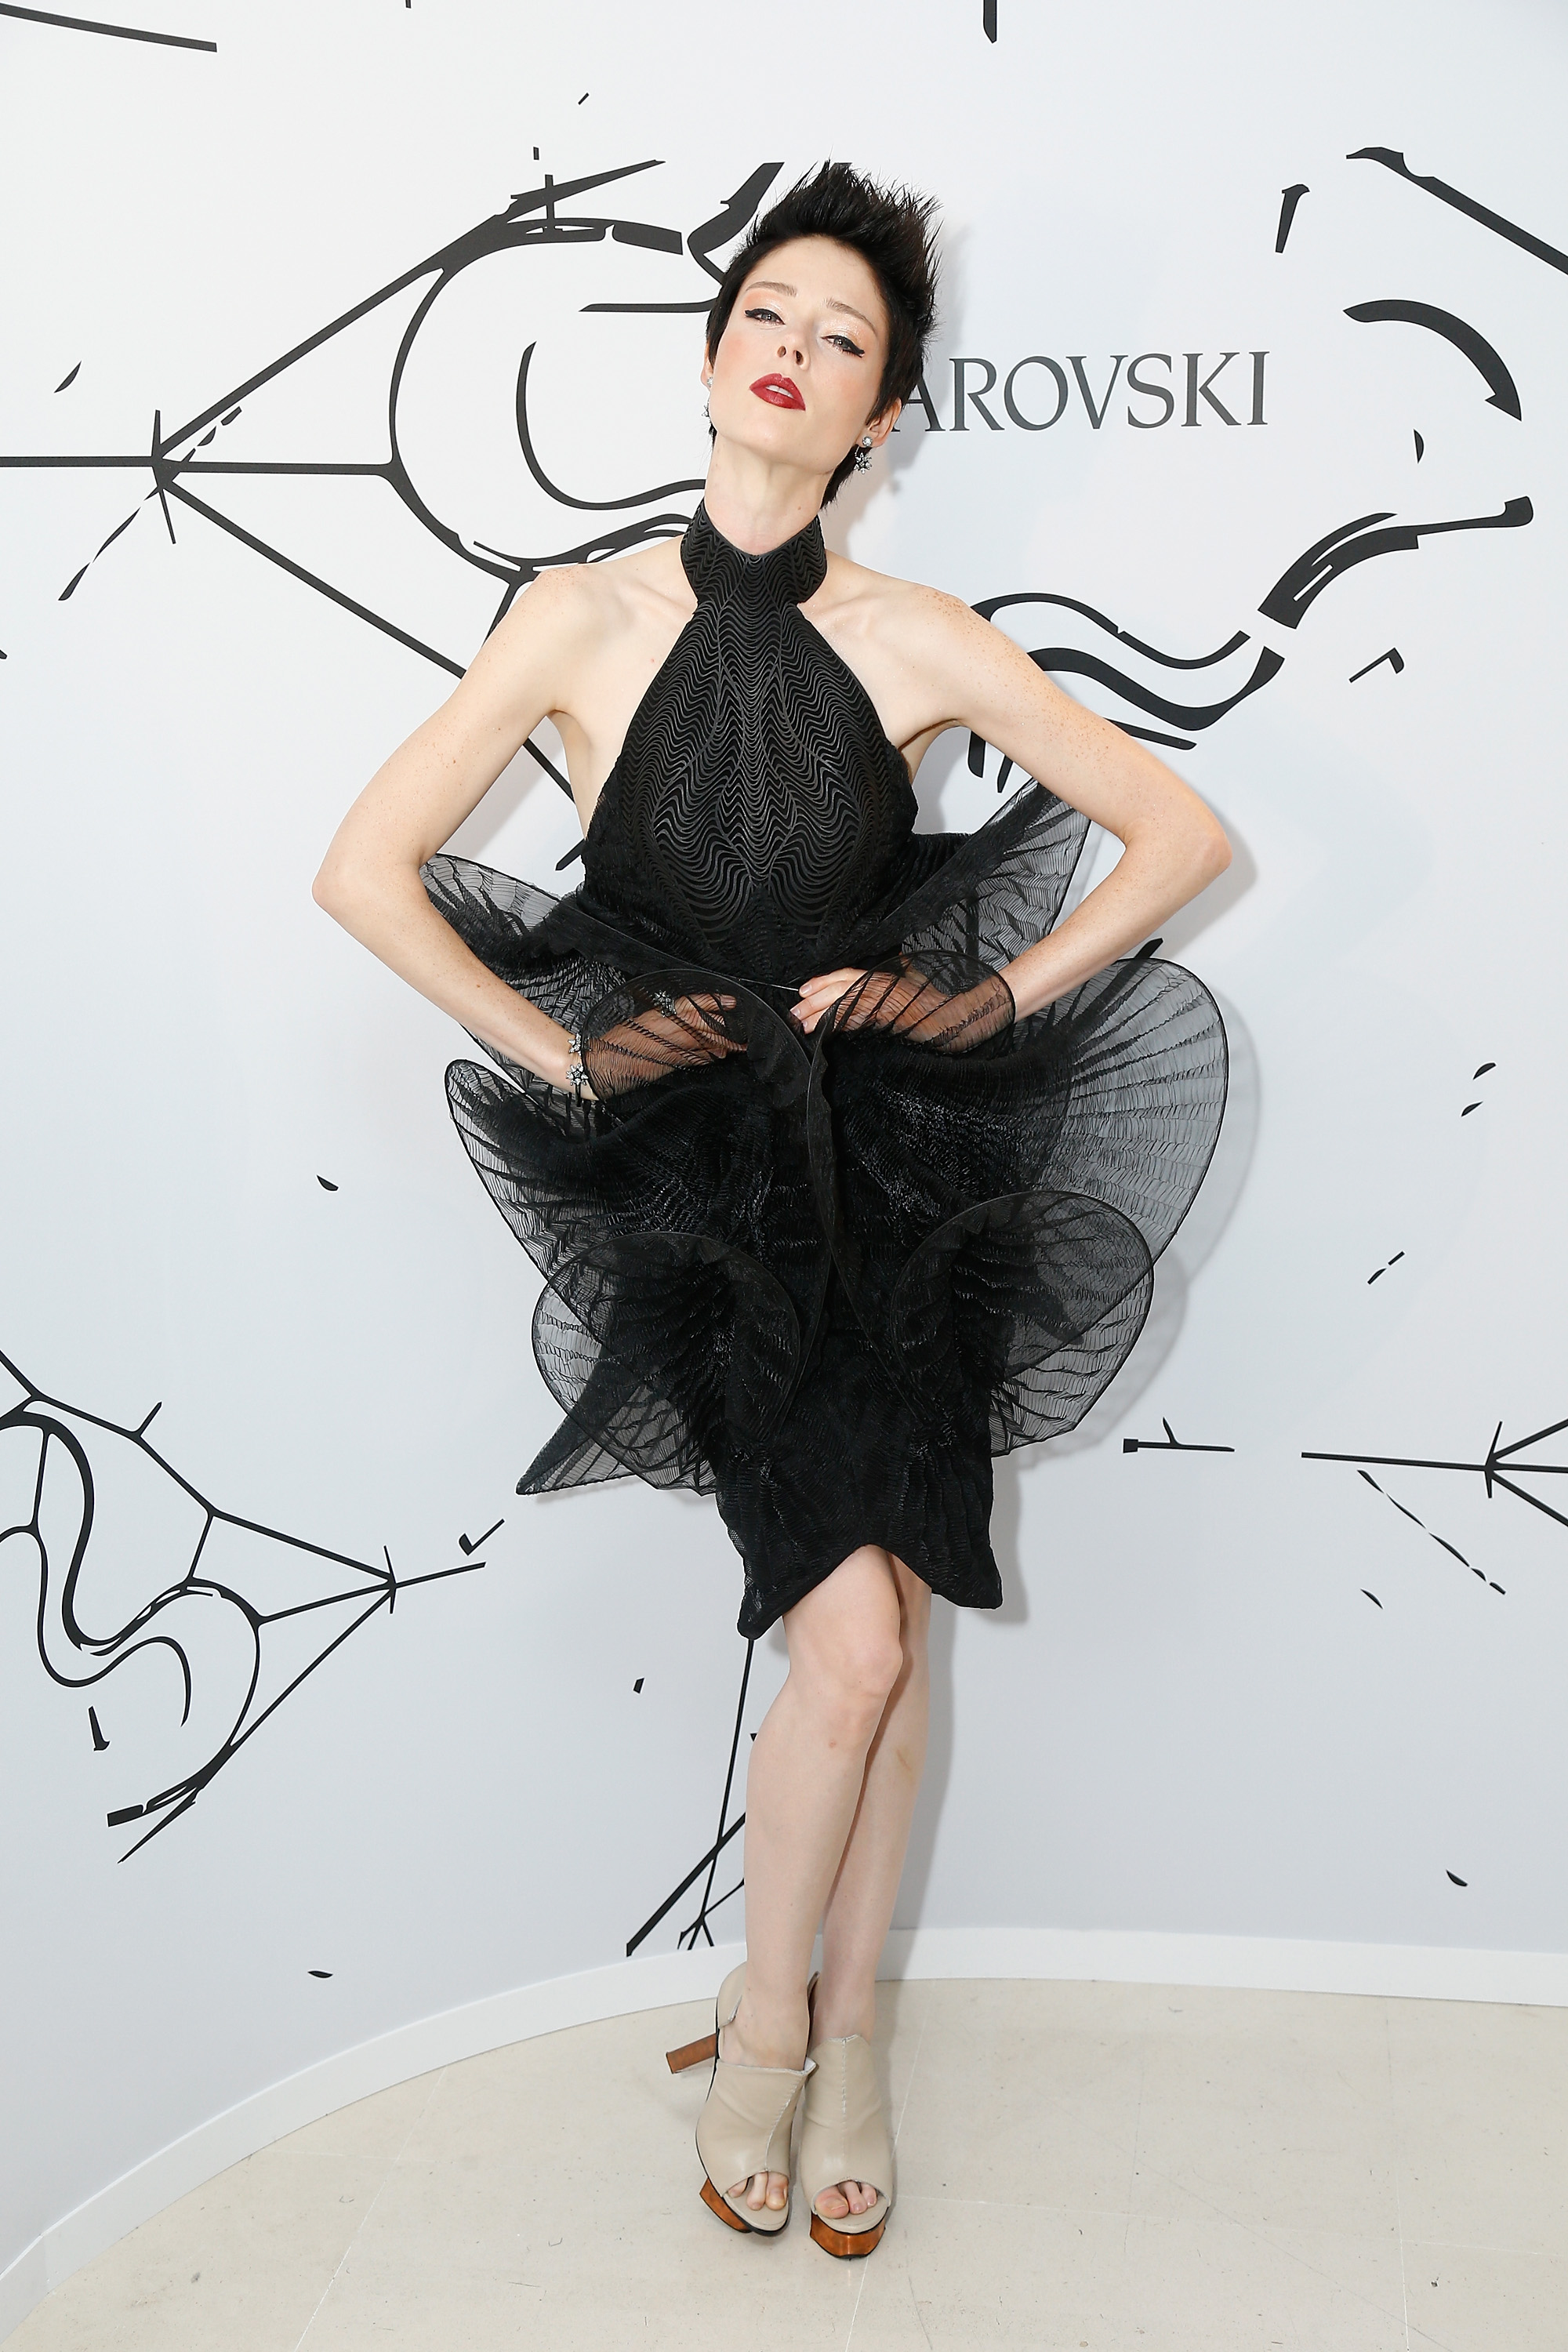 PARIS, FRANCE - JULY 03:  Coco Rocha attends the Iris Van Herpen X Swarovski Cocktail Haute Couture Fall/Winter 2017-2018 show as part of Haute Couture Paris Fashion Week on July 3, 2017 in Paris, France.  (Photo by Julien Hekimian/Getty Images) *** Local Caption *** Coco Rocha